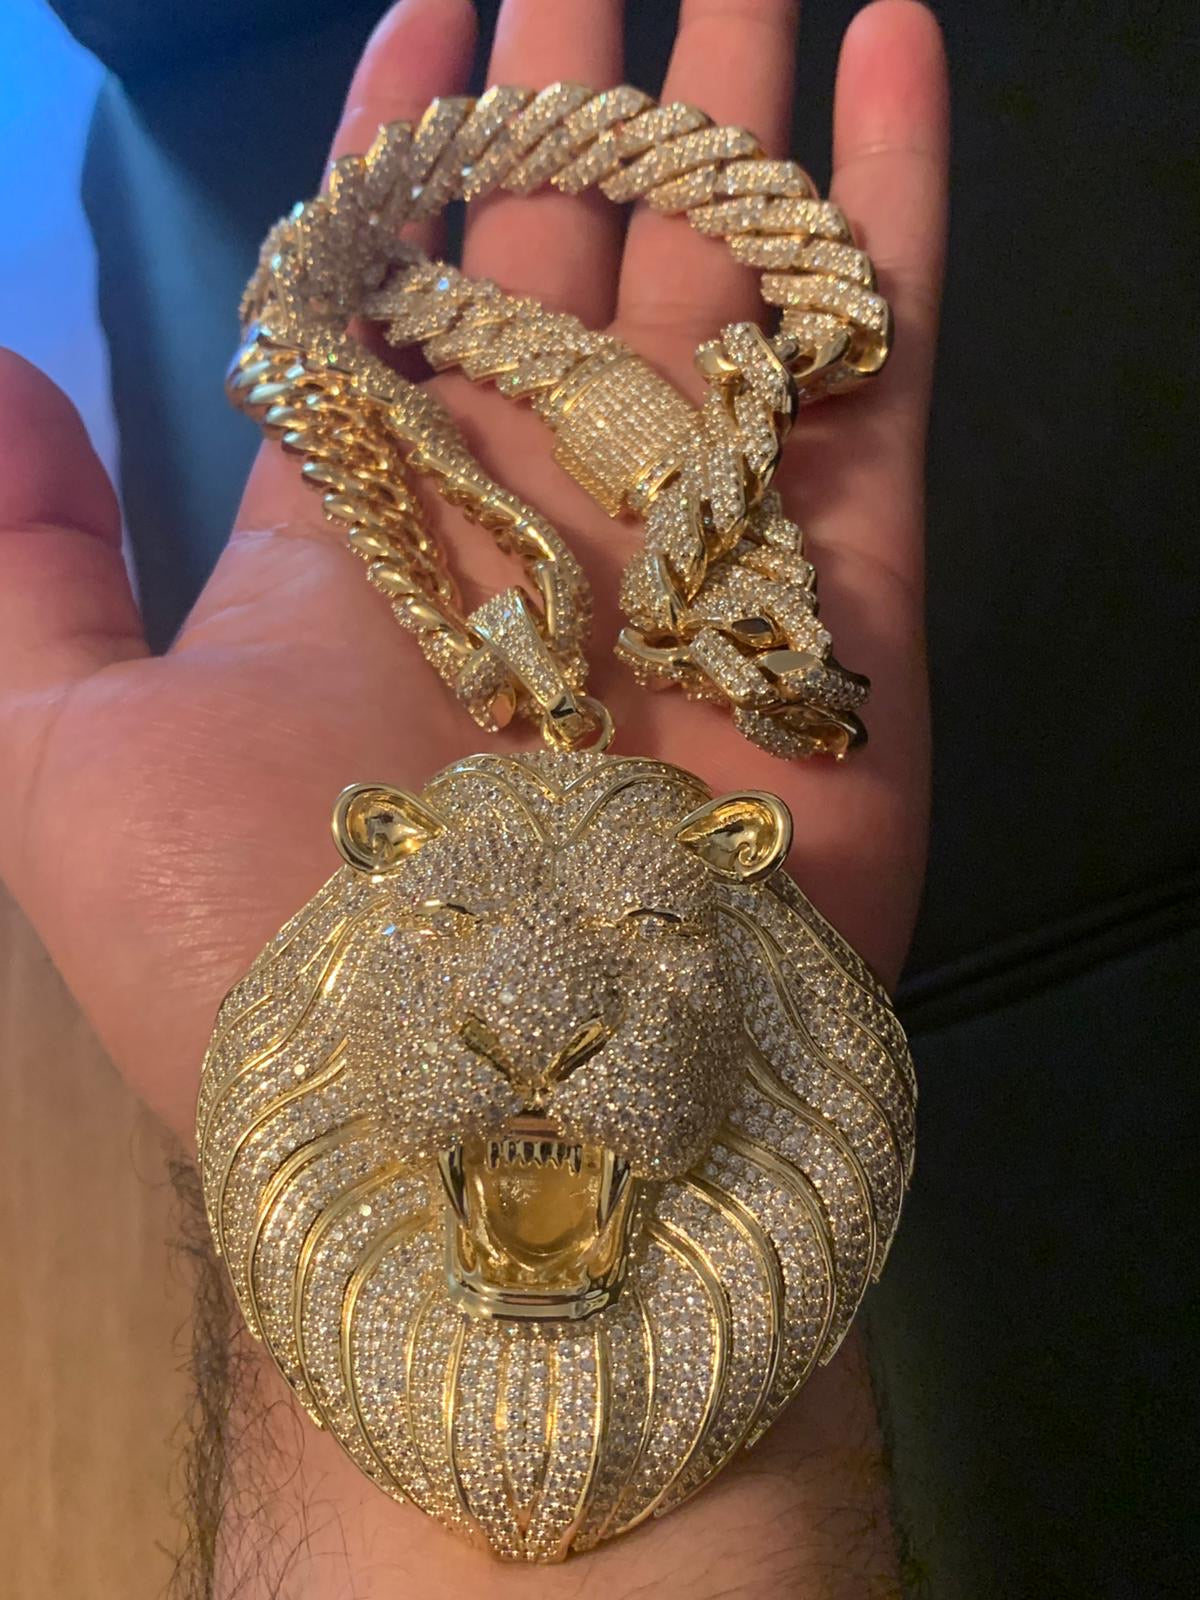 Cuban Fully Iced with Lion pendant